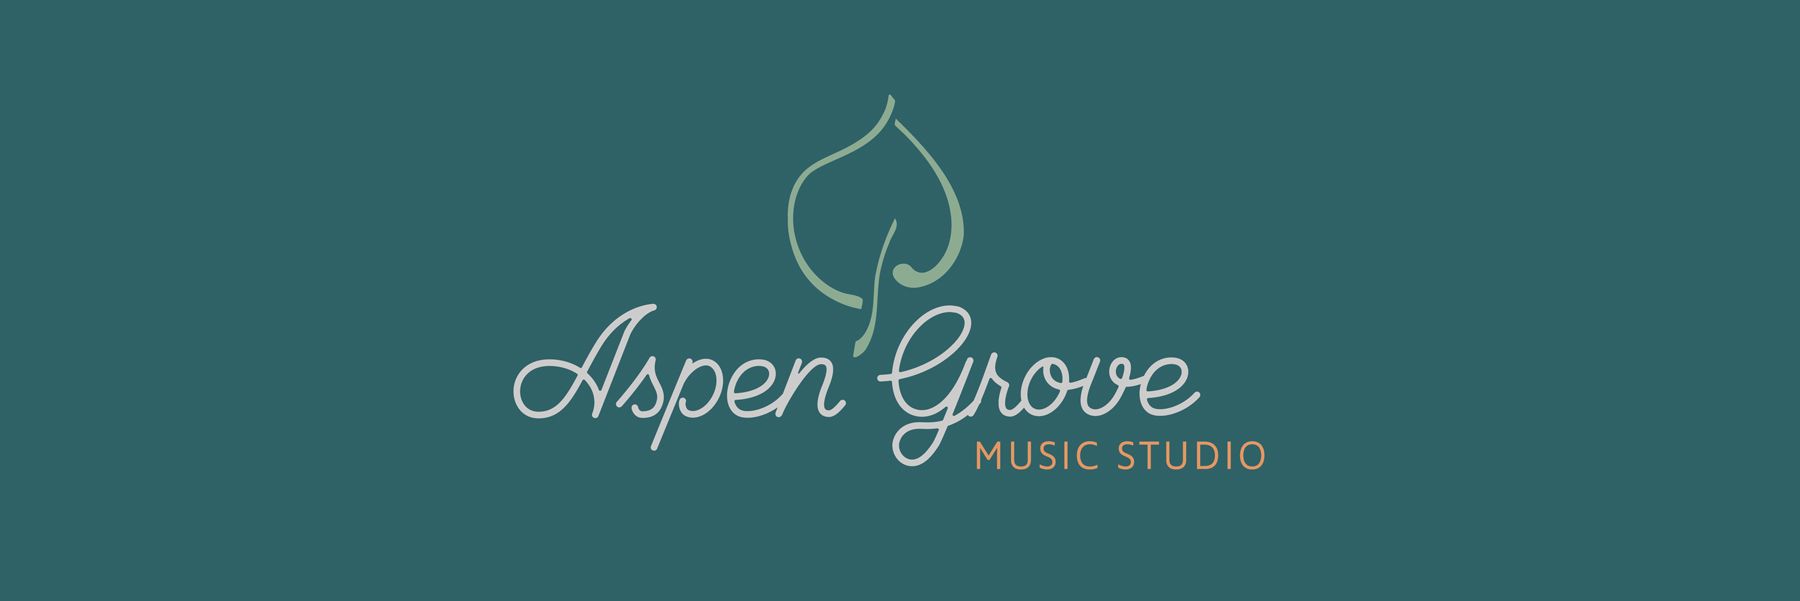 Aspen Grove Music Studio - website design